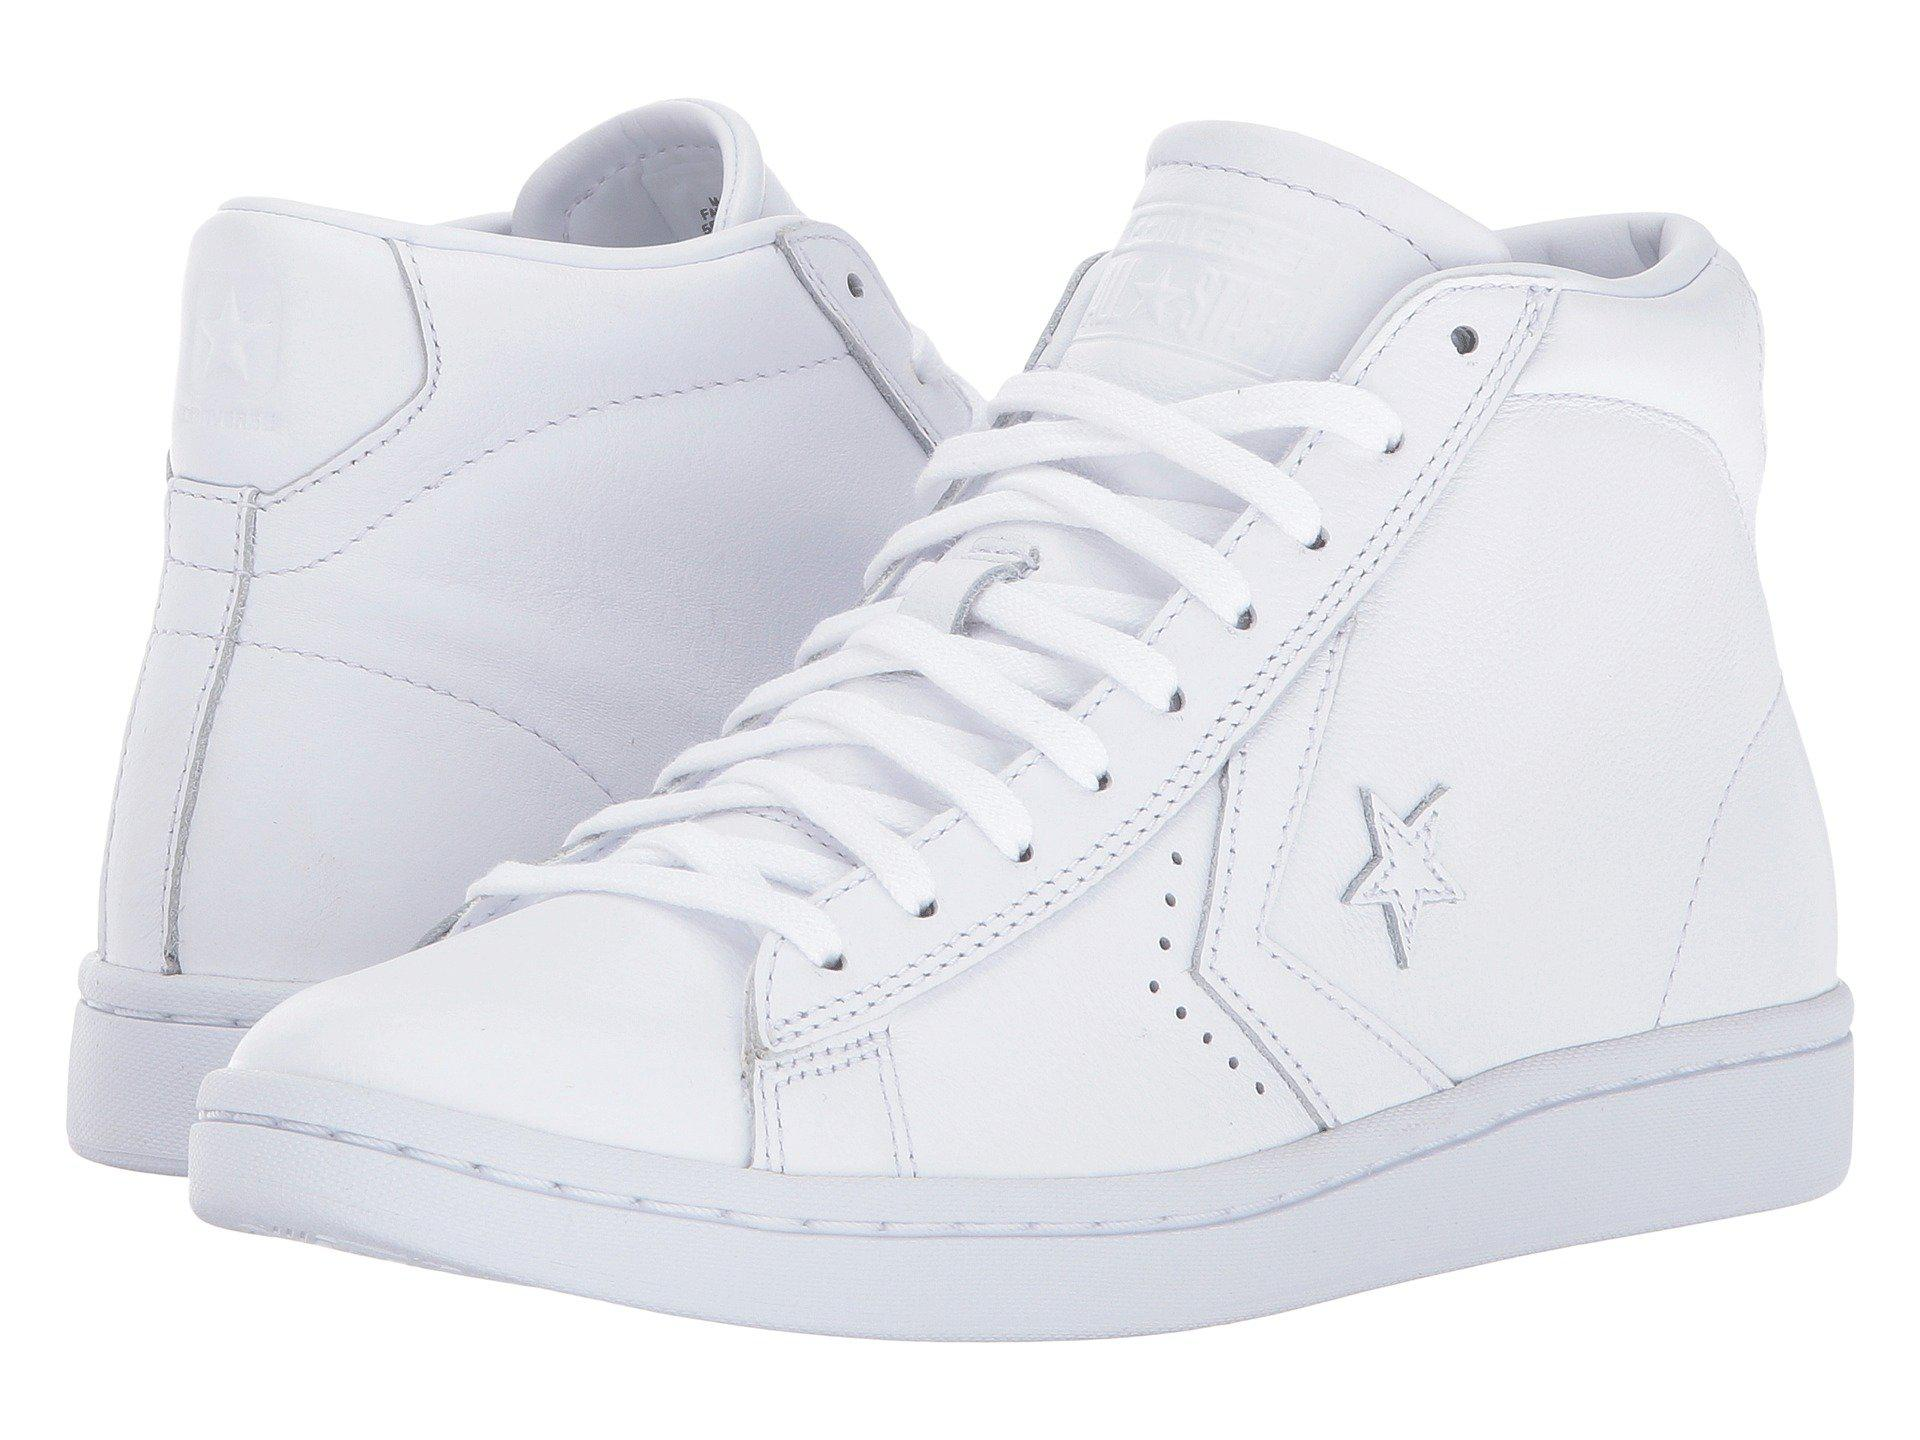 converse sneakers pro mid lp